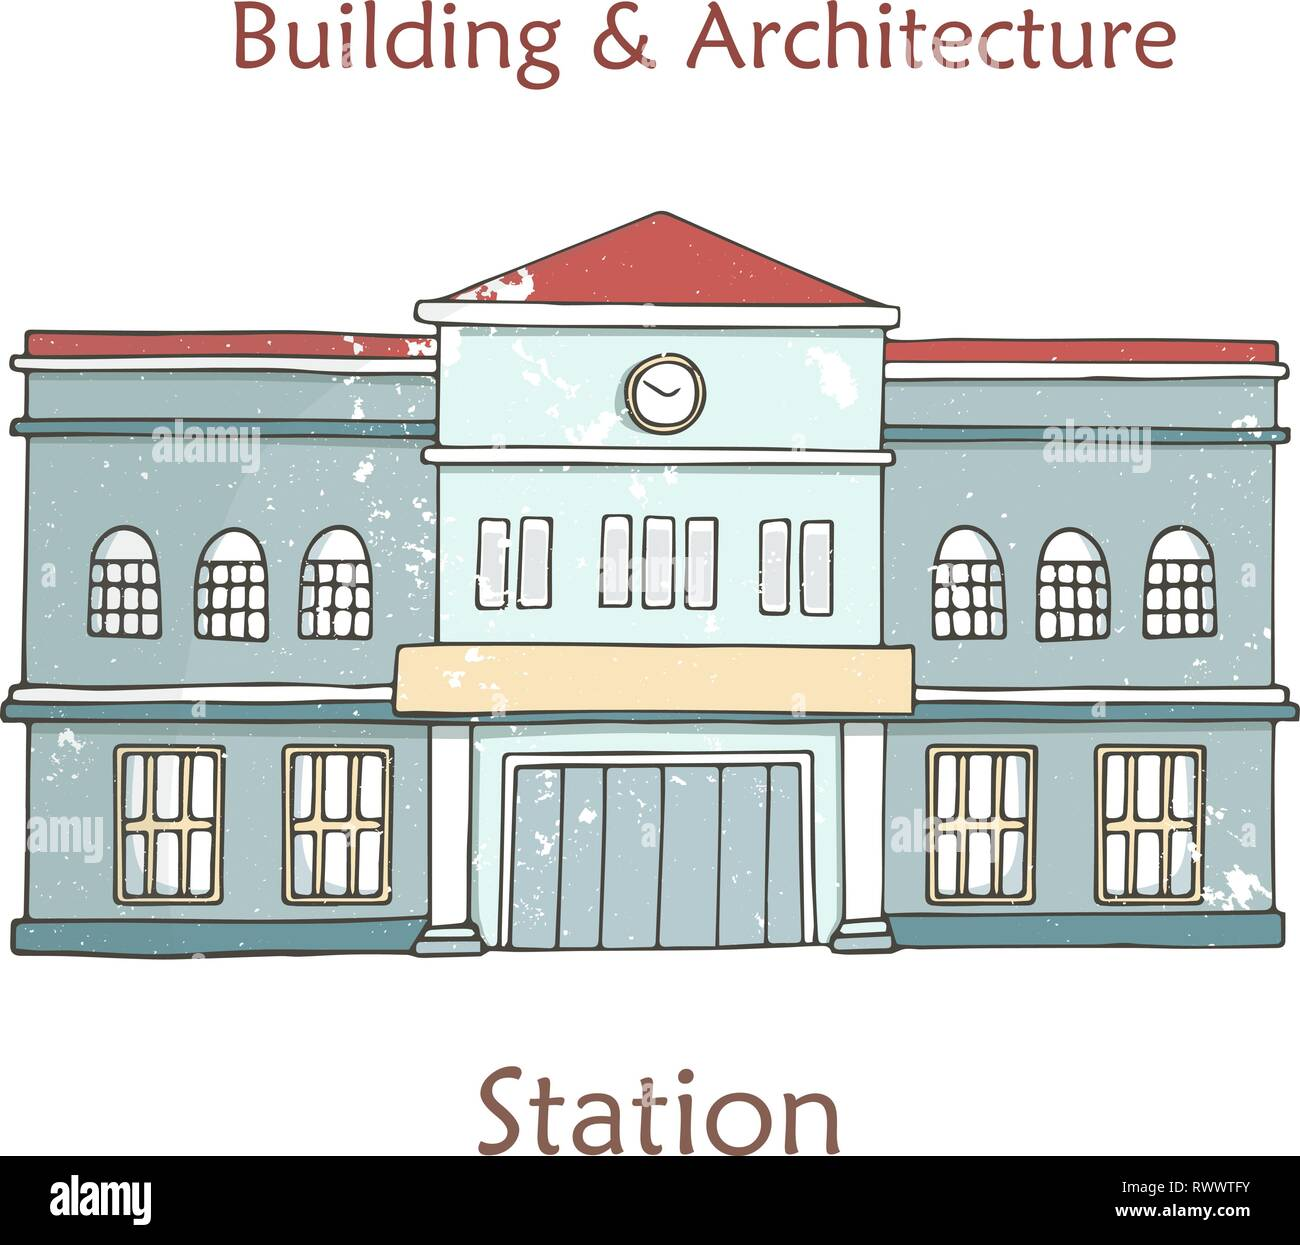 Vector railway station icon. Cartoon illustration in retro style with grunge textures and rust effect. Hand drawn clip art on white background. - Stock Vector